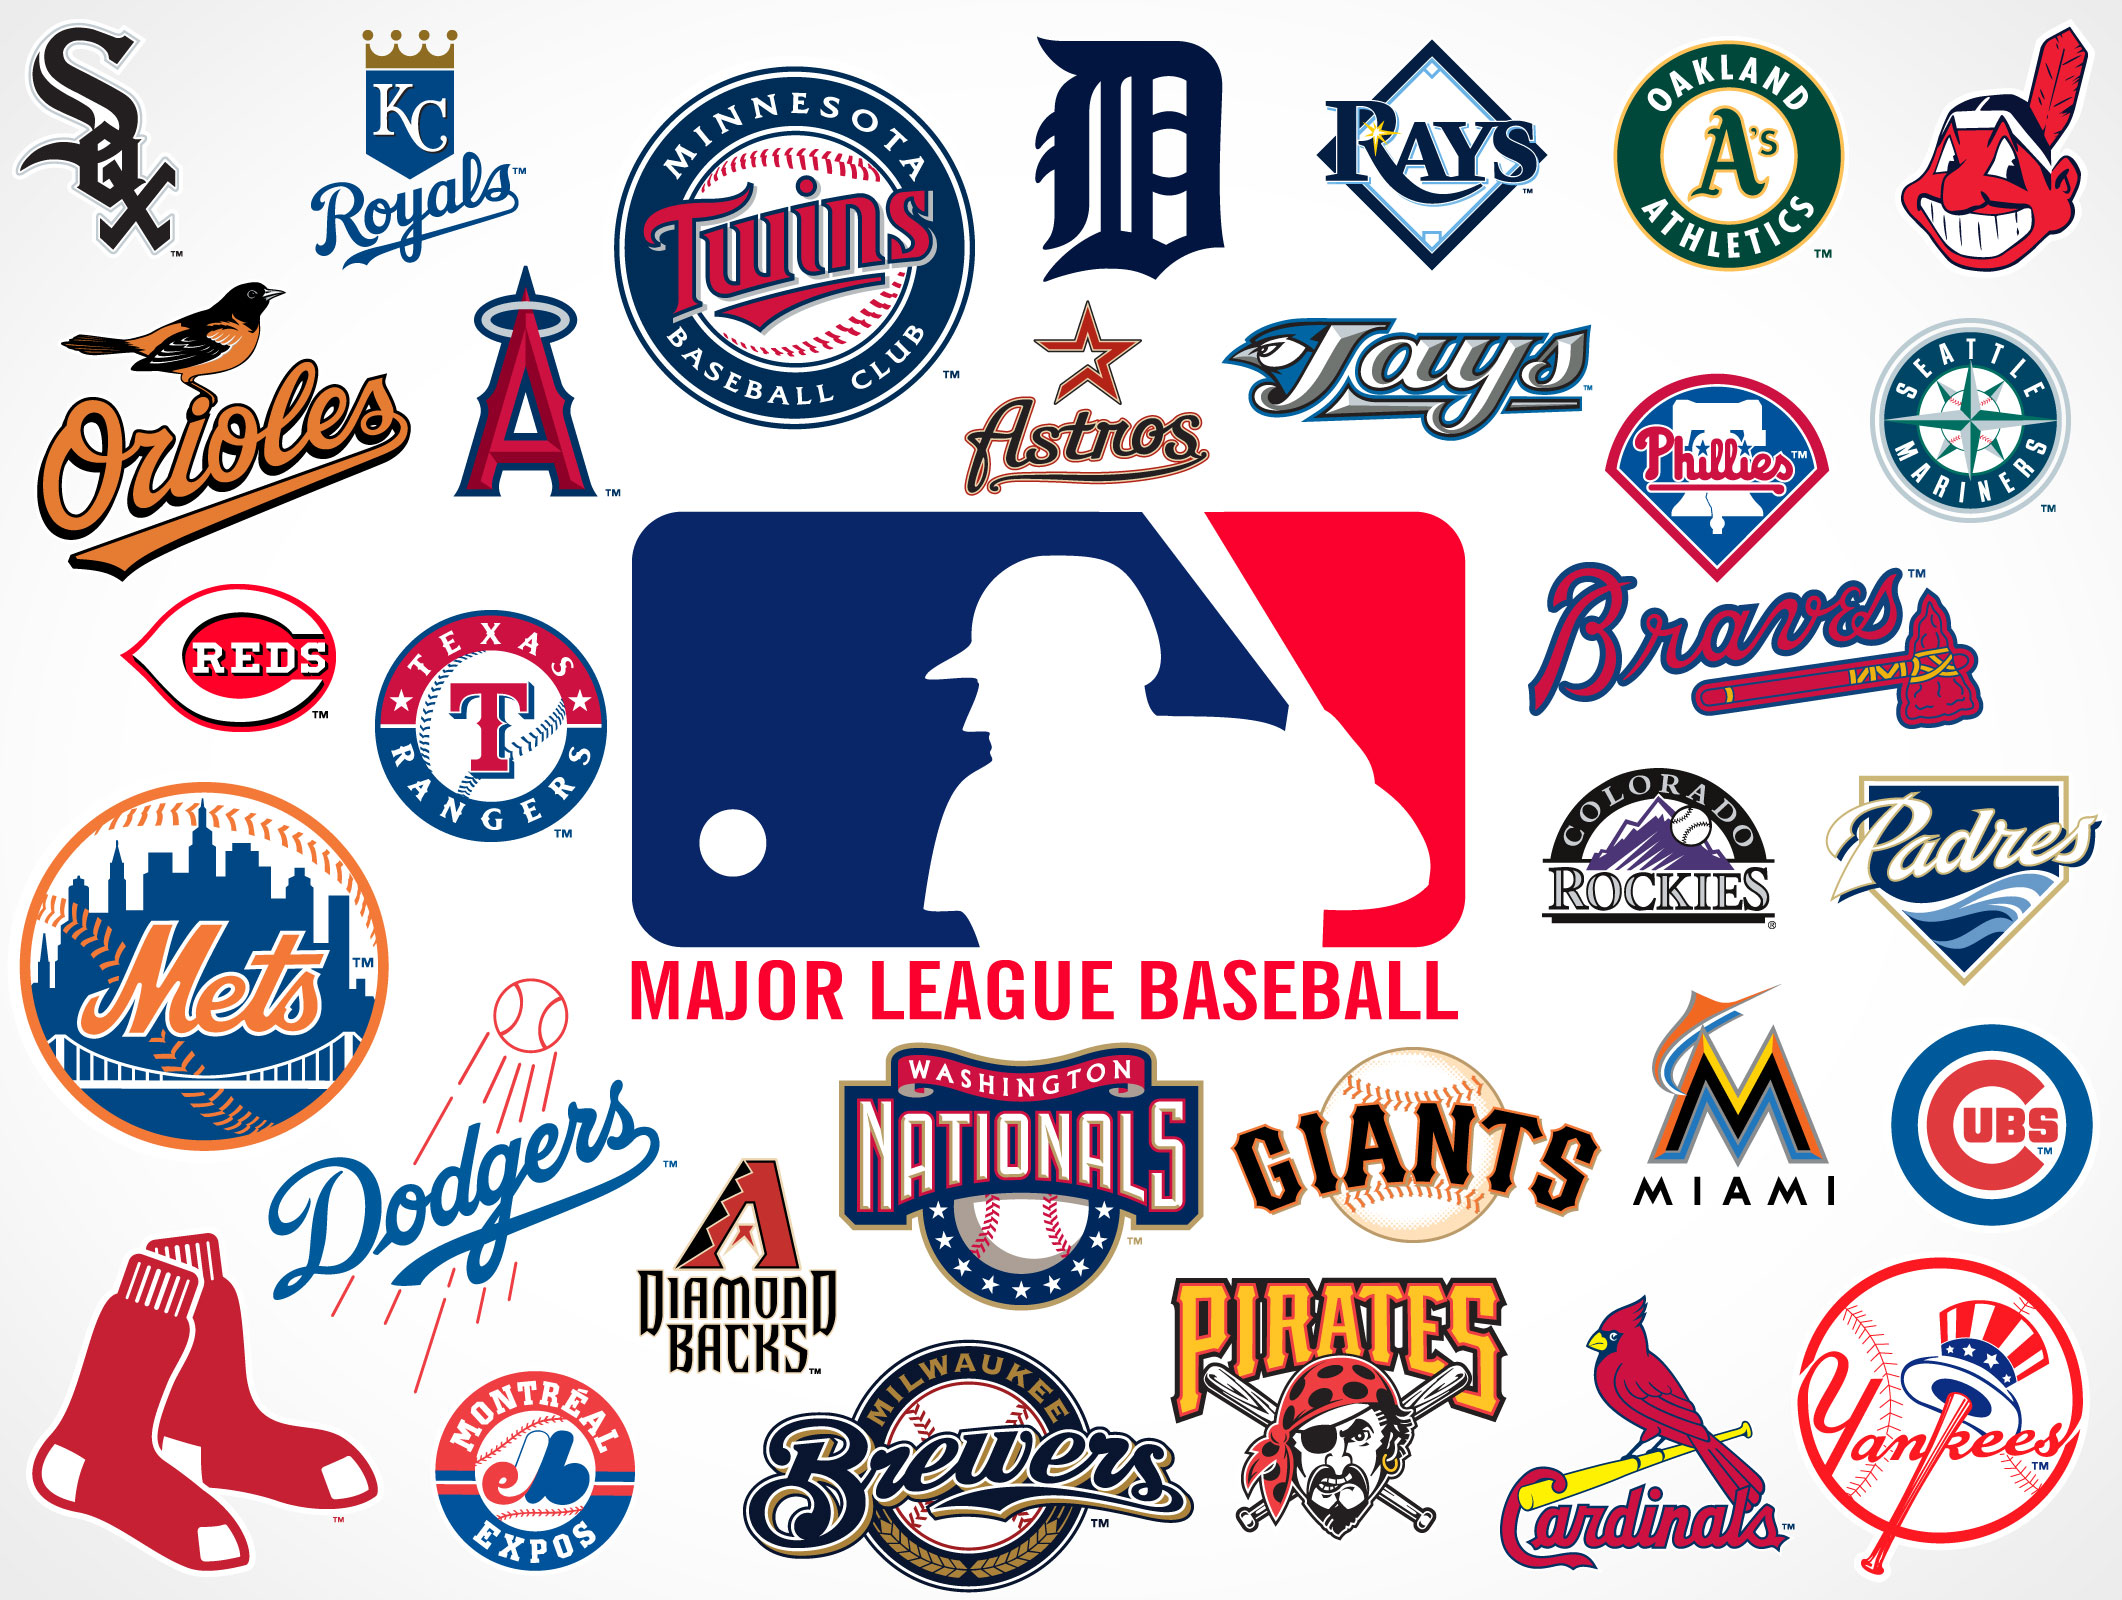 Chris Creamers Sports Logos Page SportsLogosNet A virtual museum of sports logos uniforms and historical items Currently over 10000 on display for your